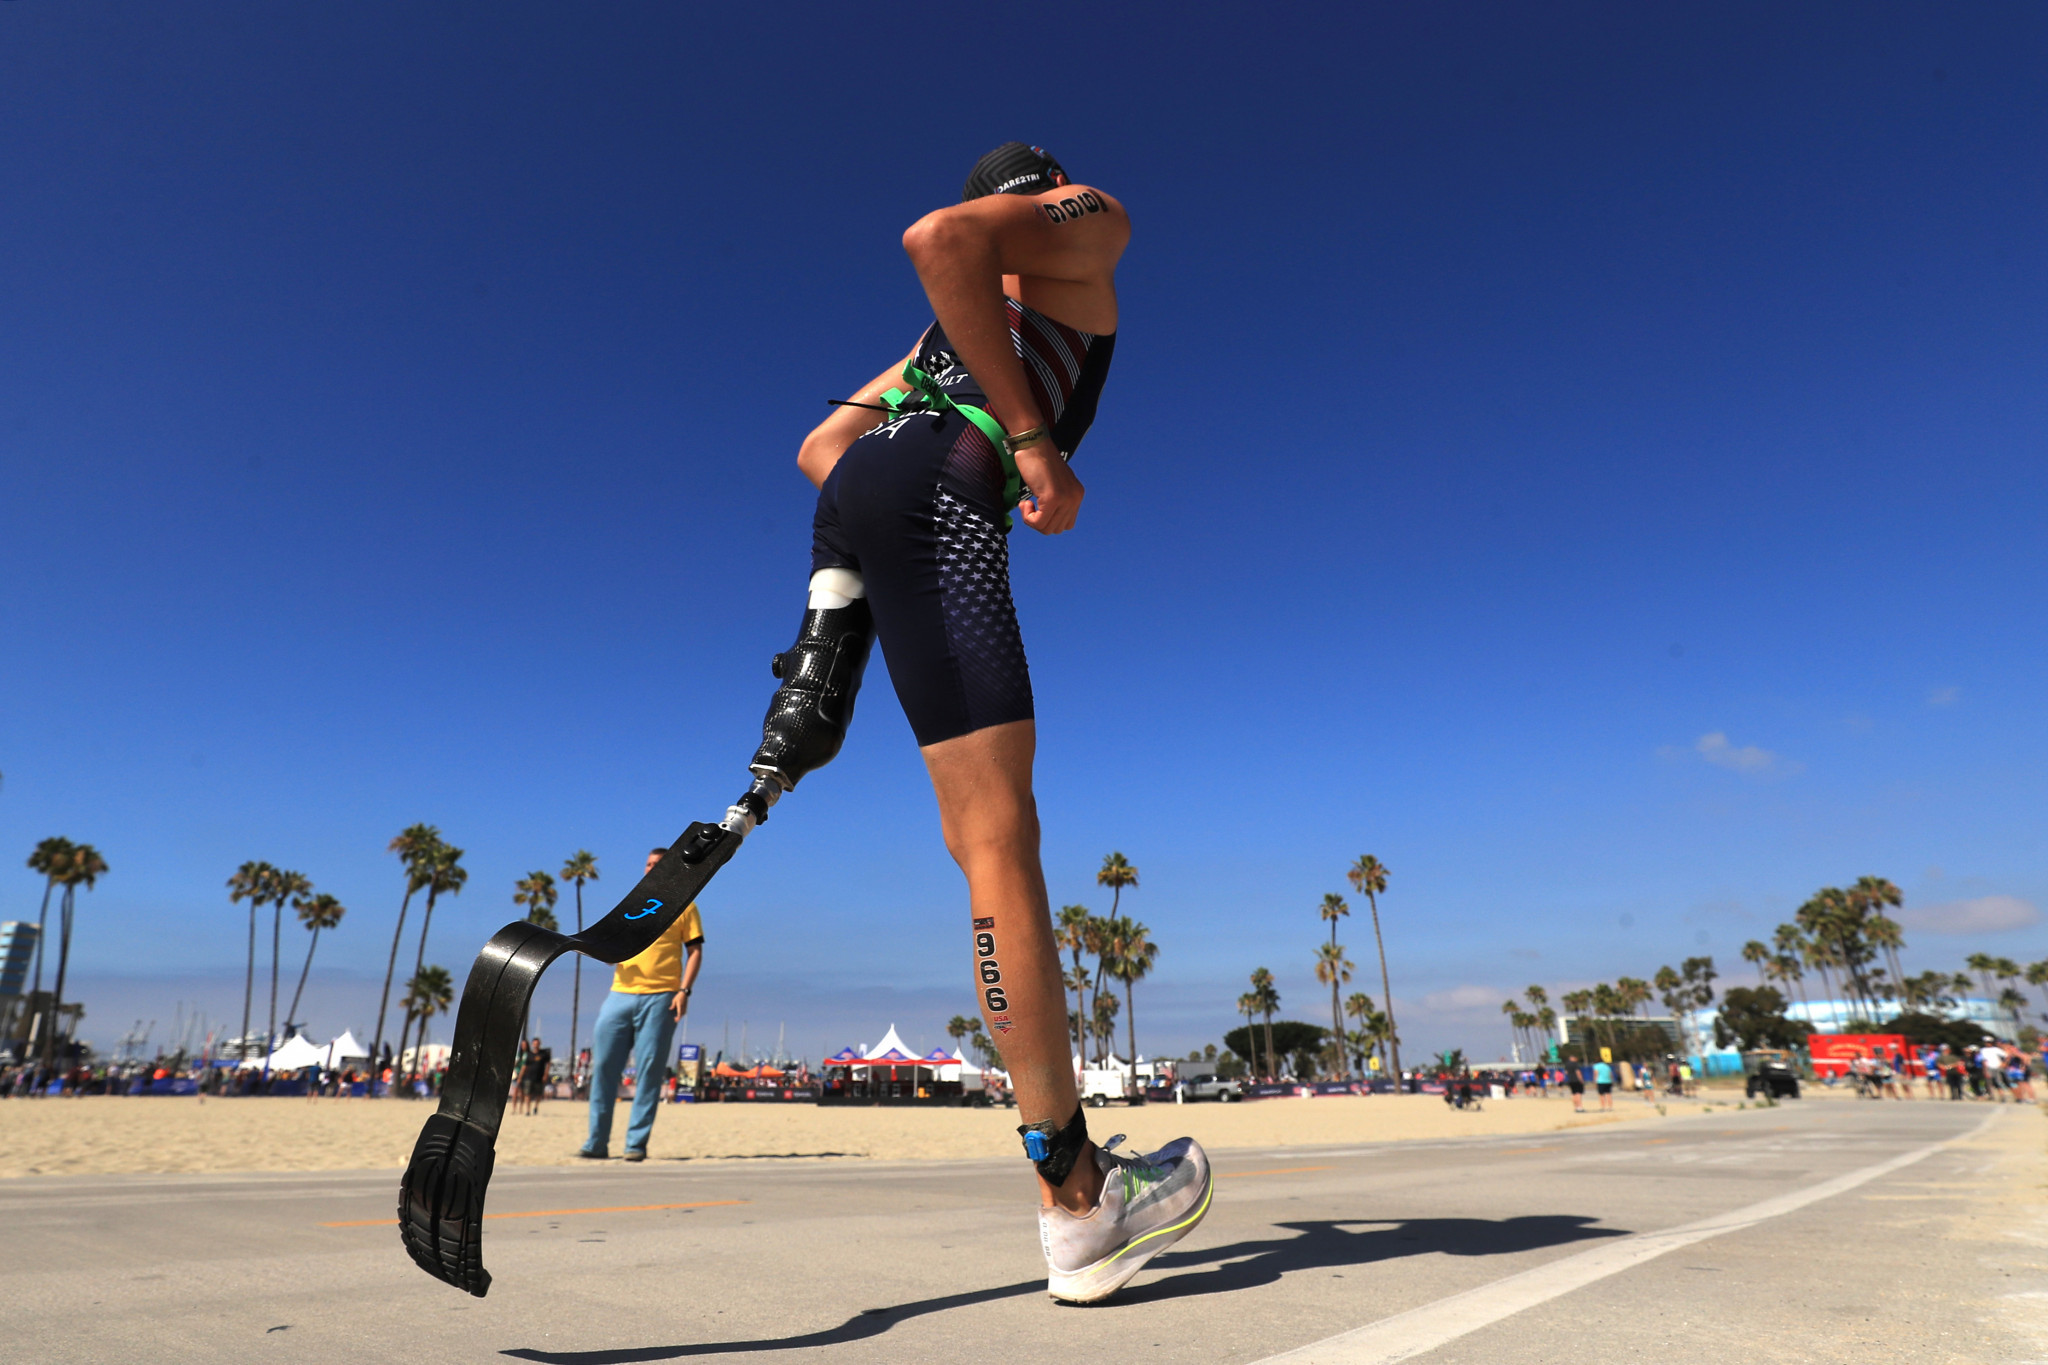 USA Paratriathlon National Championships to again take place on Los Angeles 2028 course